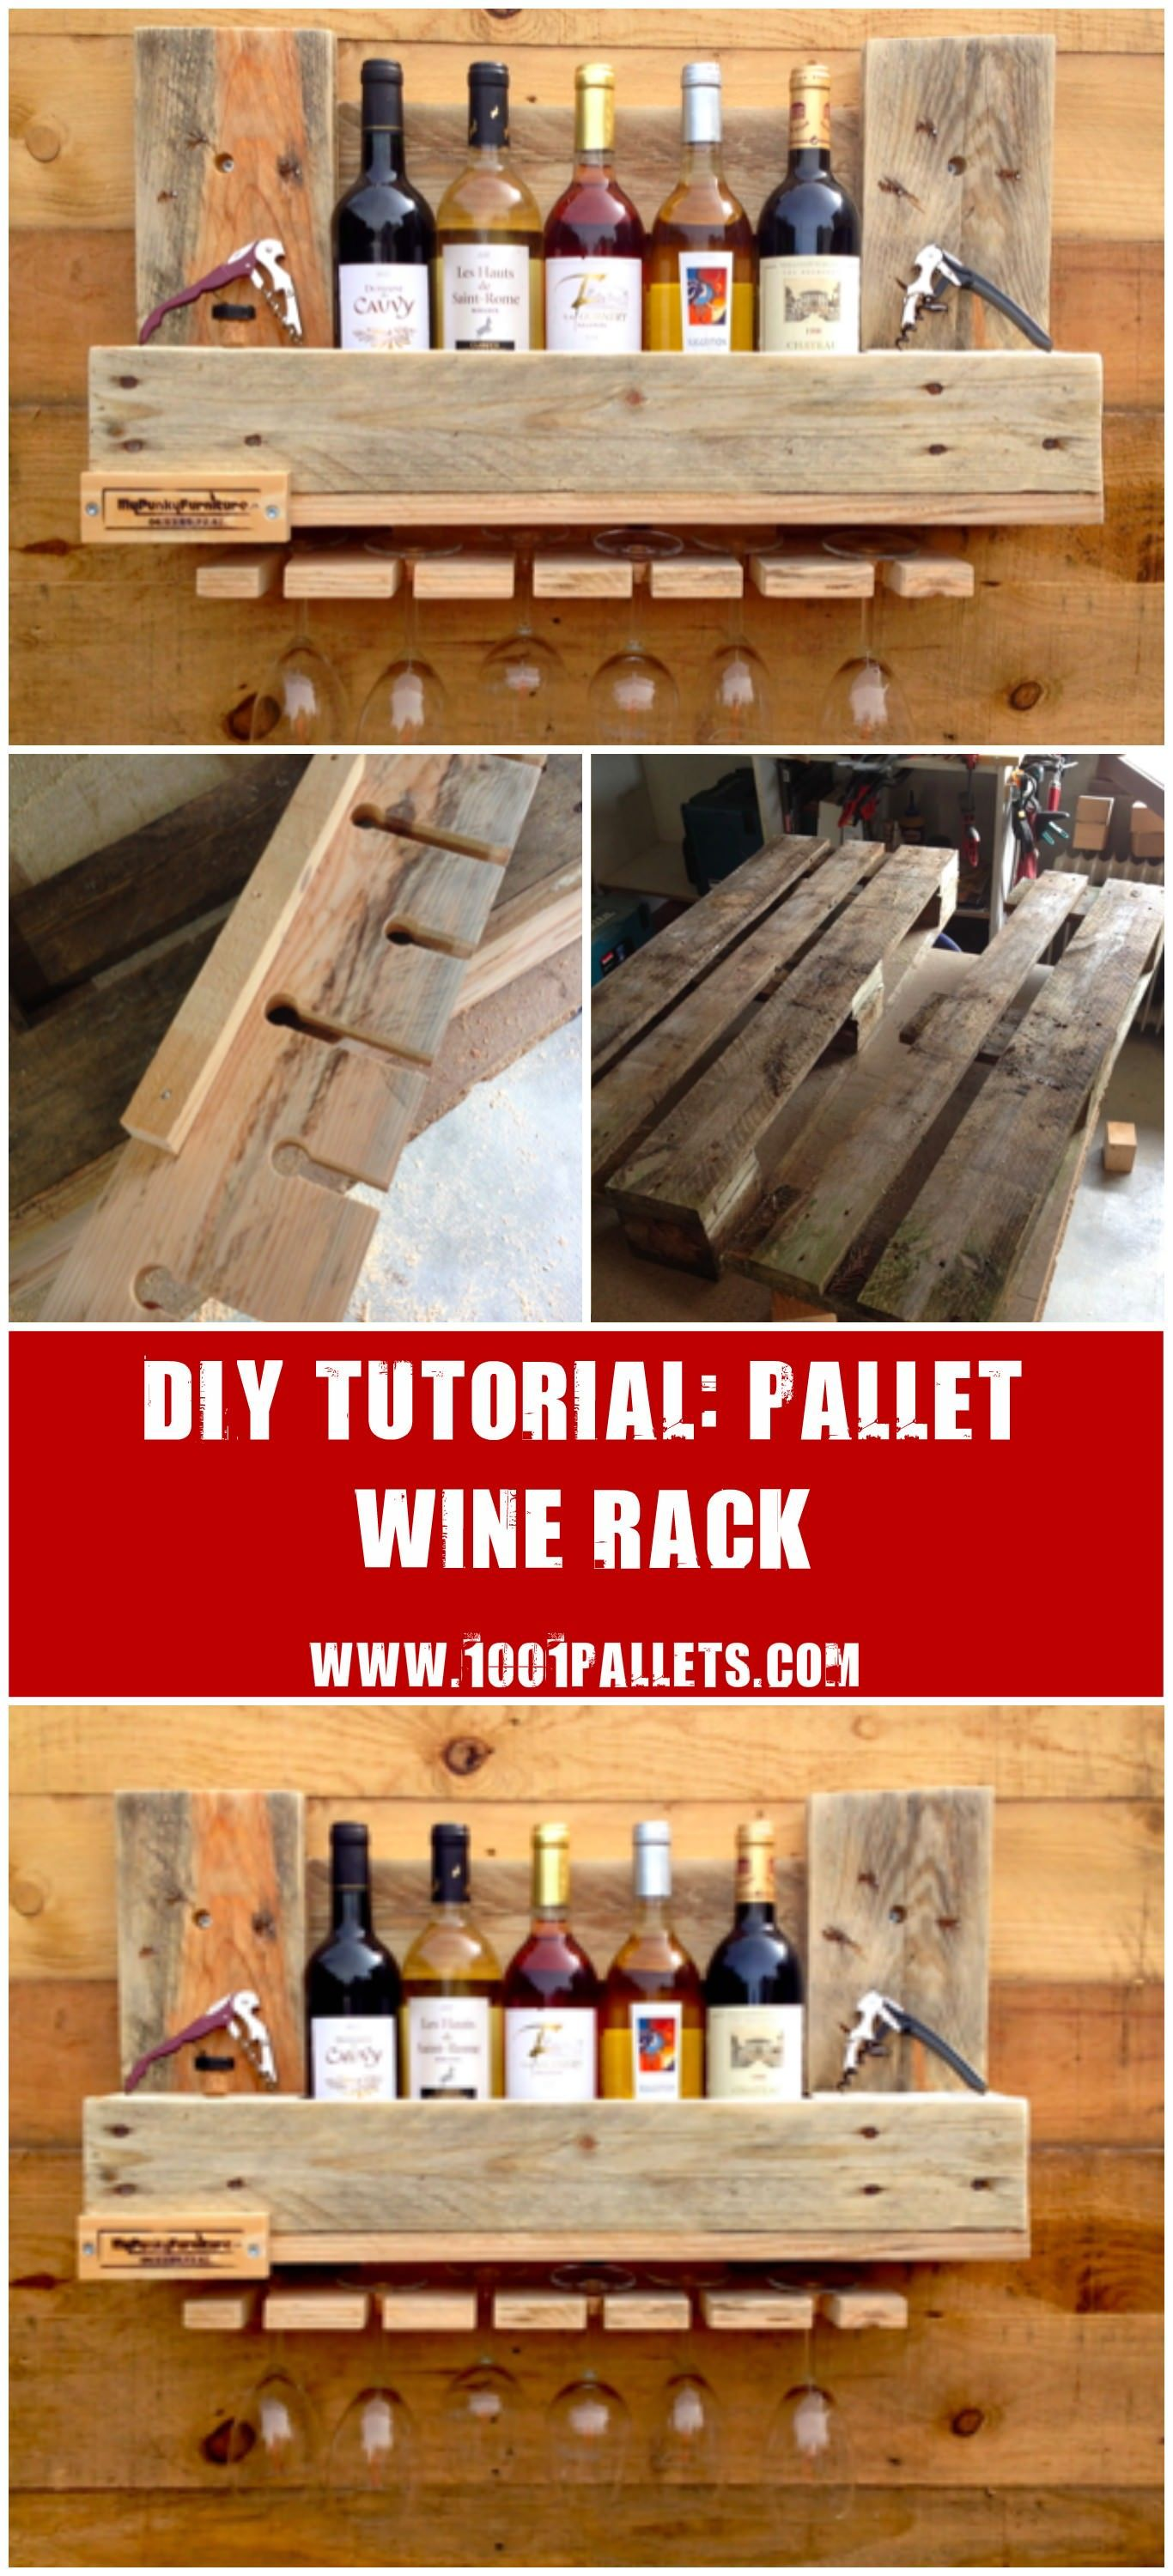 Diy Pdf Tutorial Pallet Wine Rack 1001 Pallets Free Download Pallet Wine Rack Pallet Wine Pallet